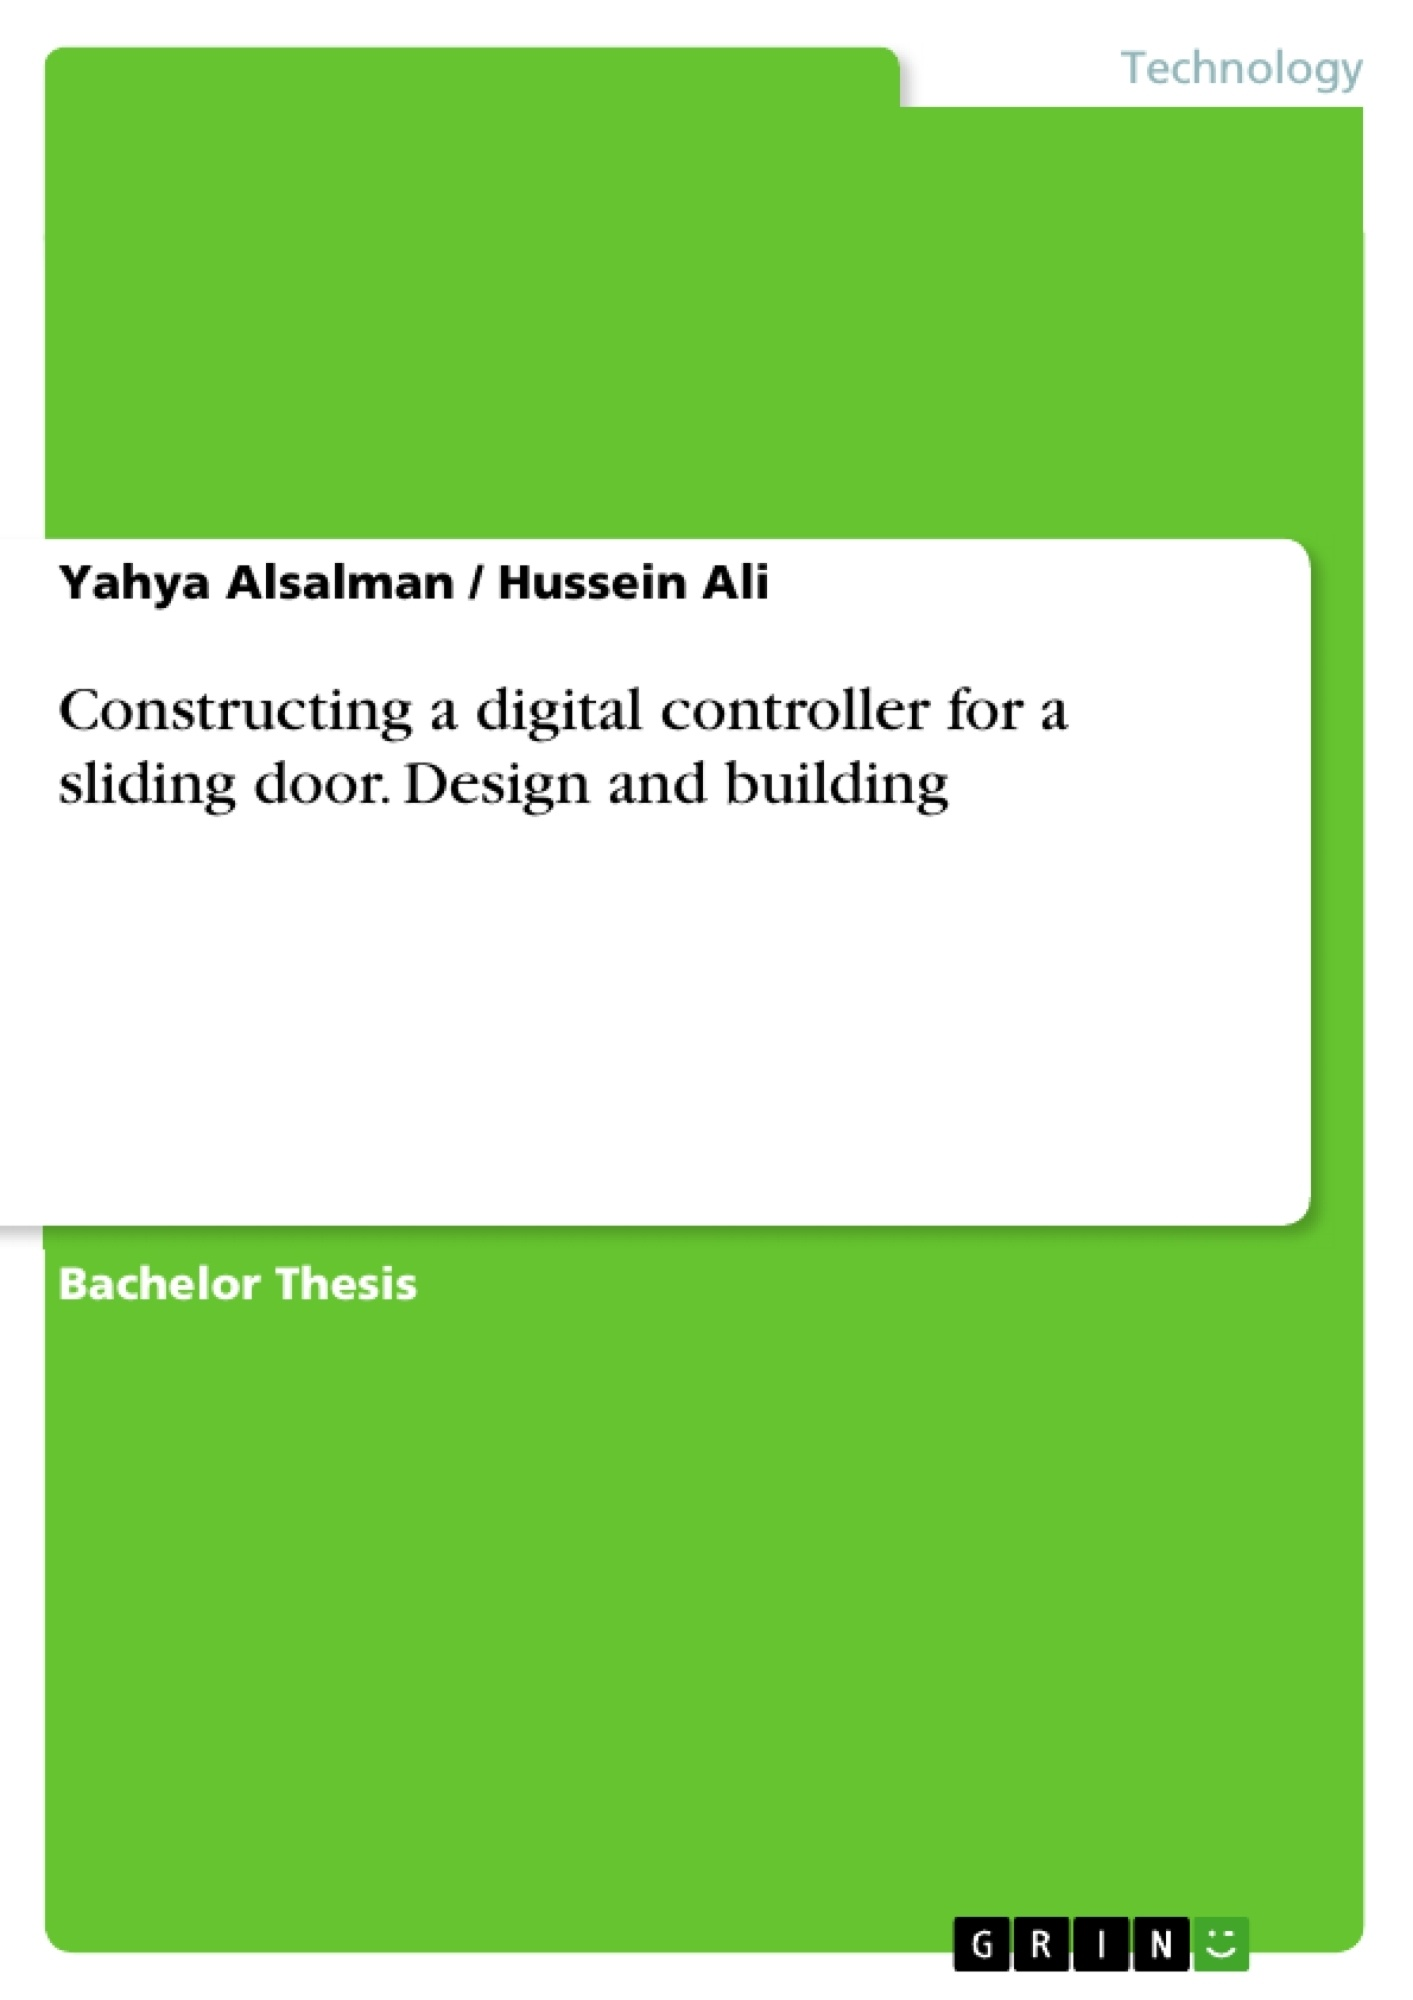 Title: Constructing a digital controller for a sliding door. Design and building